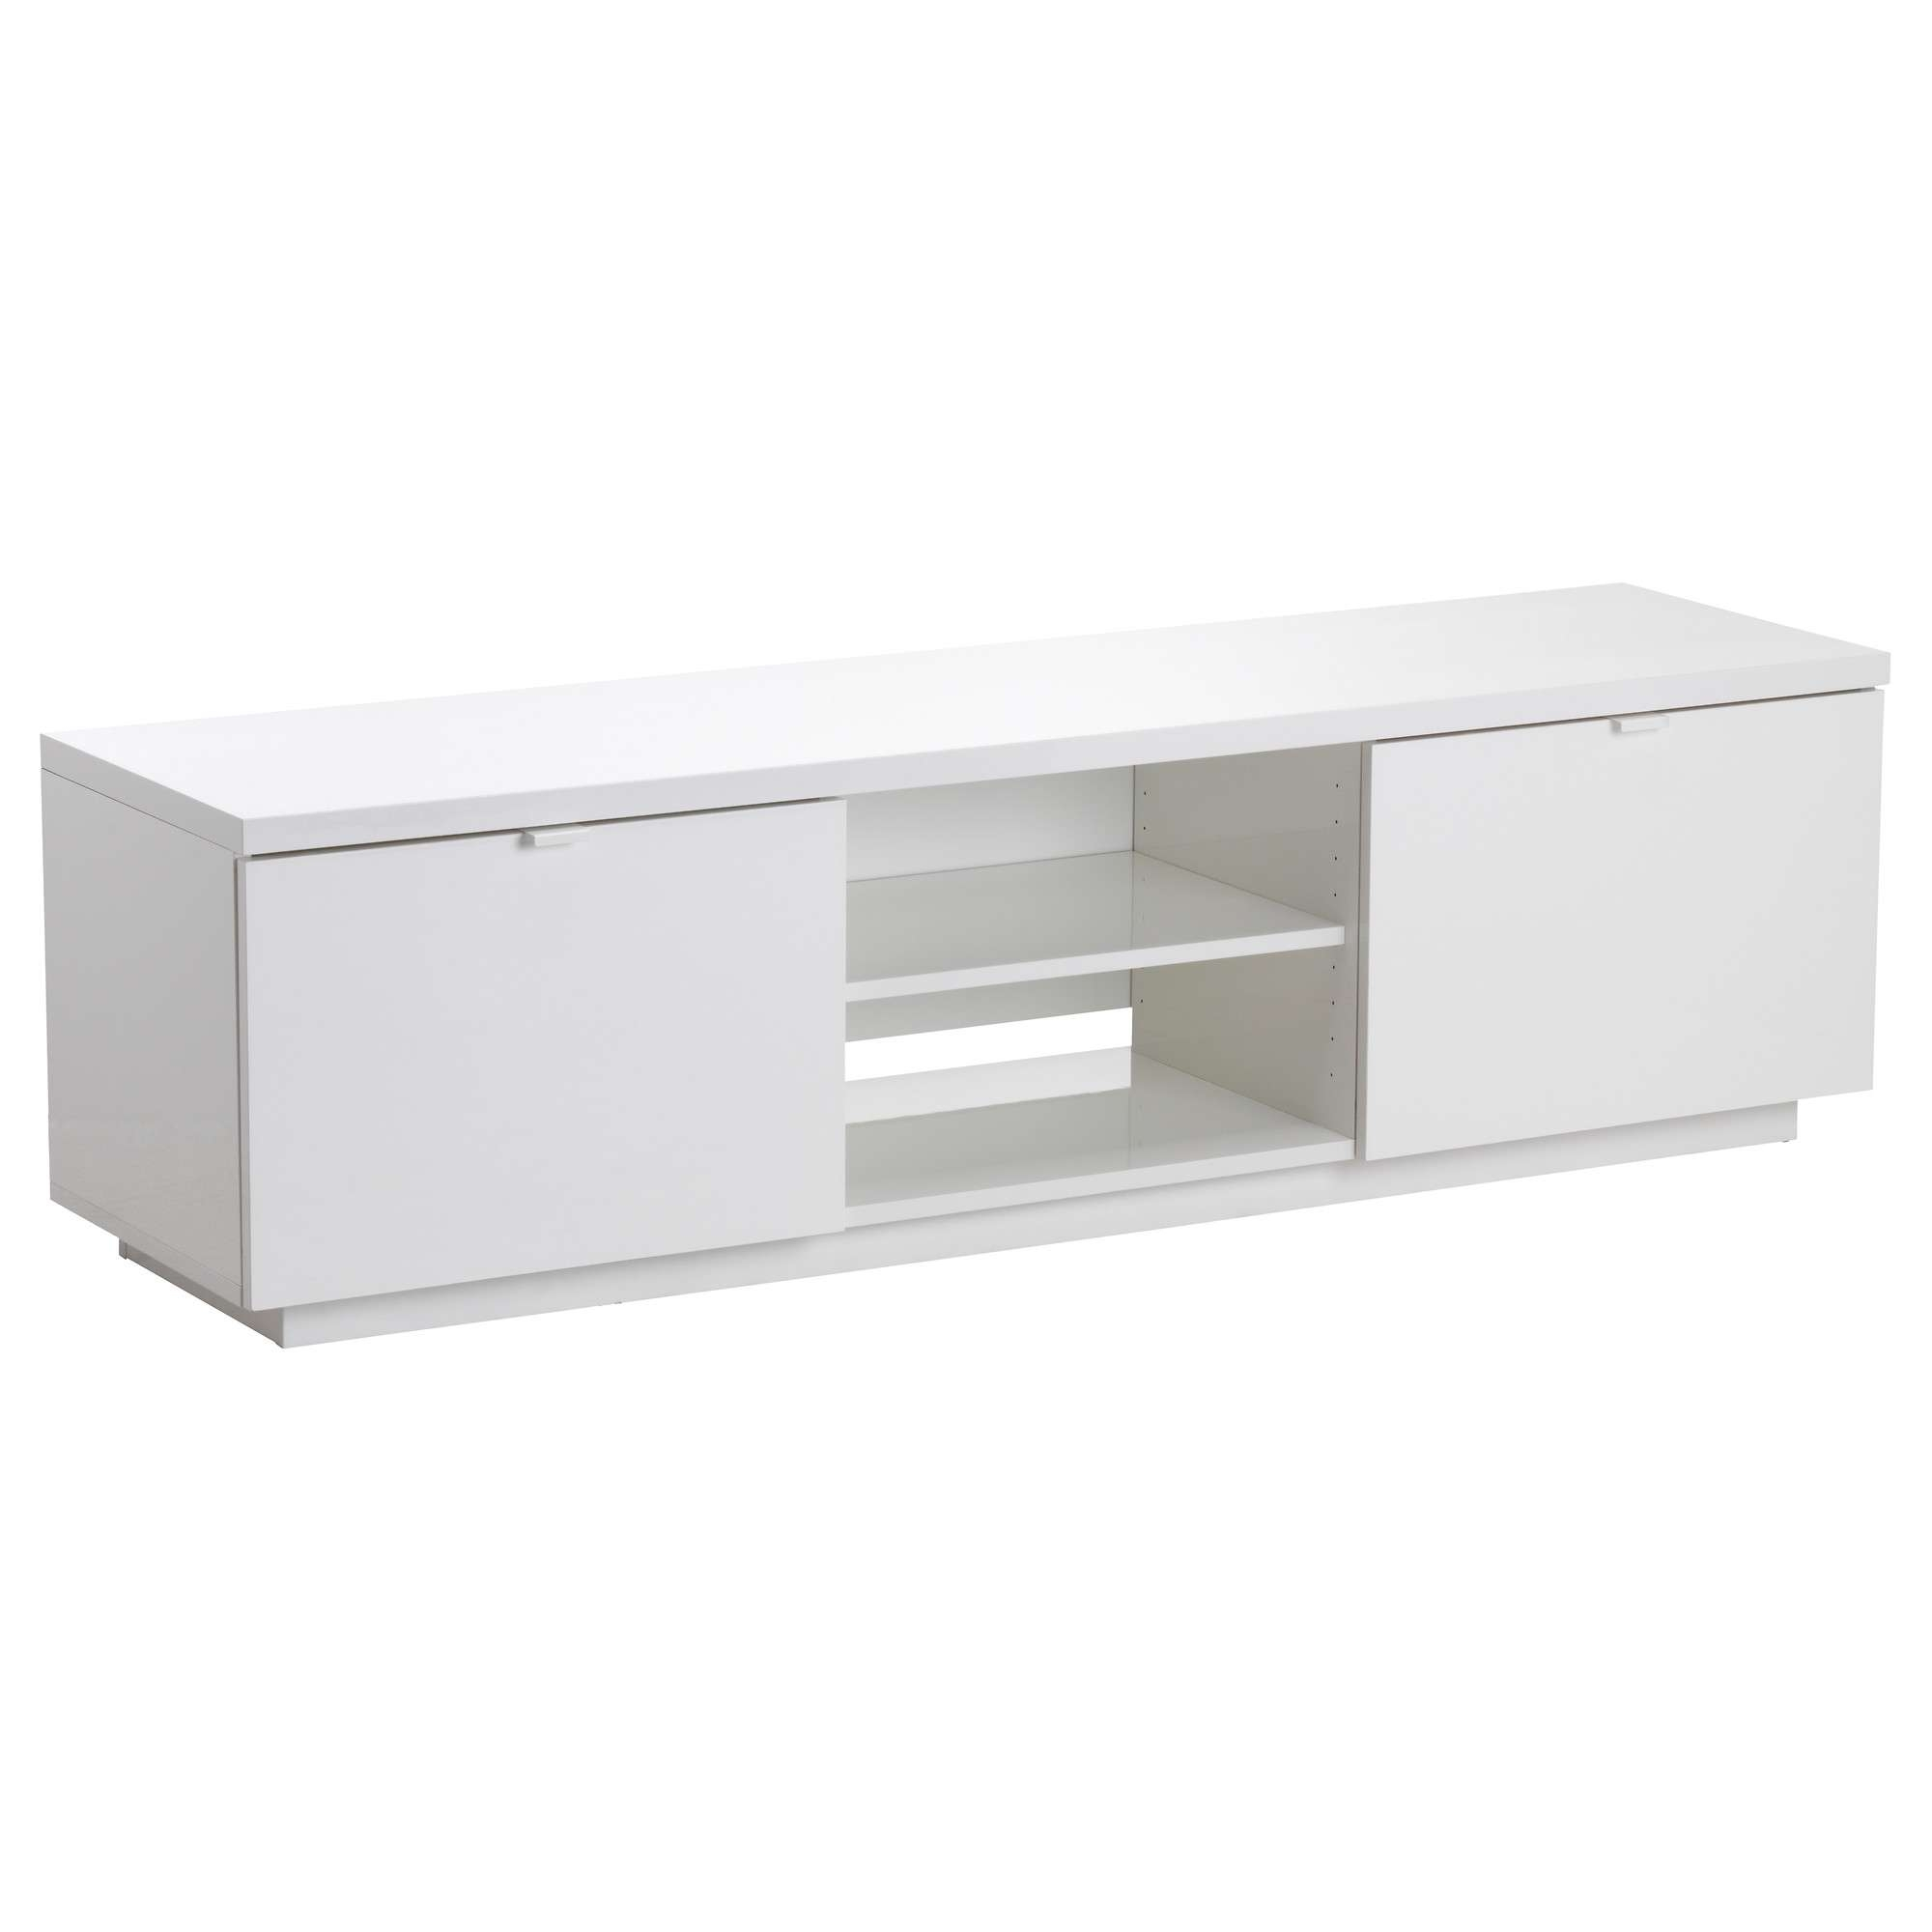 Tv Tables – Tv Benches | Ikea For Oval White Tv Stands (View 19 of 20)